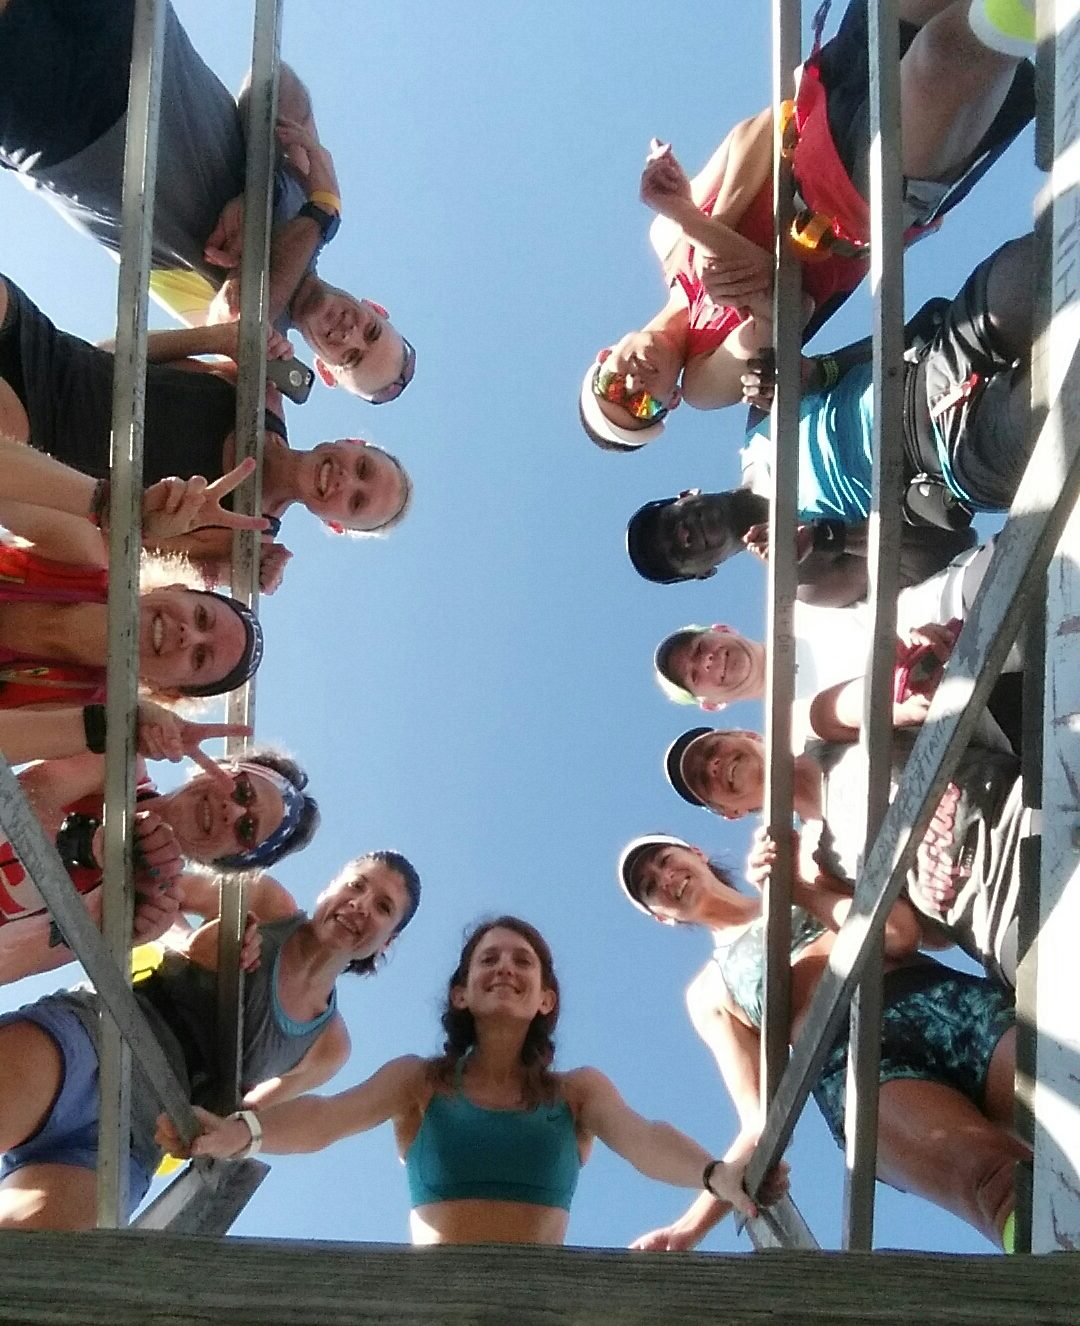 New friends looking down from the fire tower